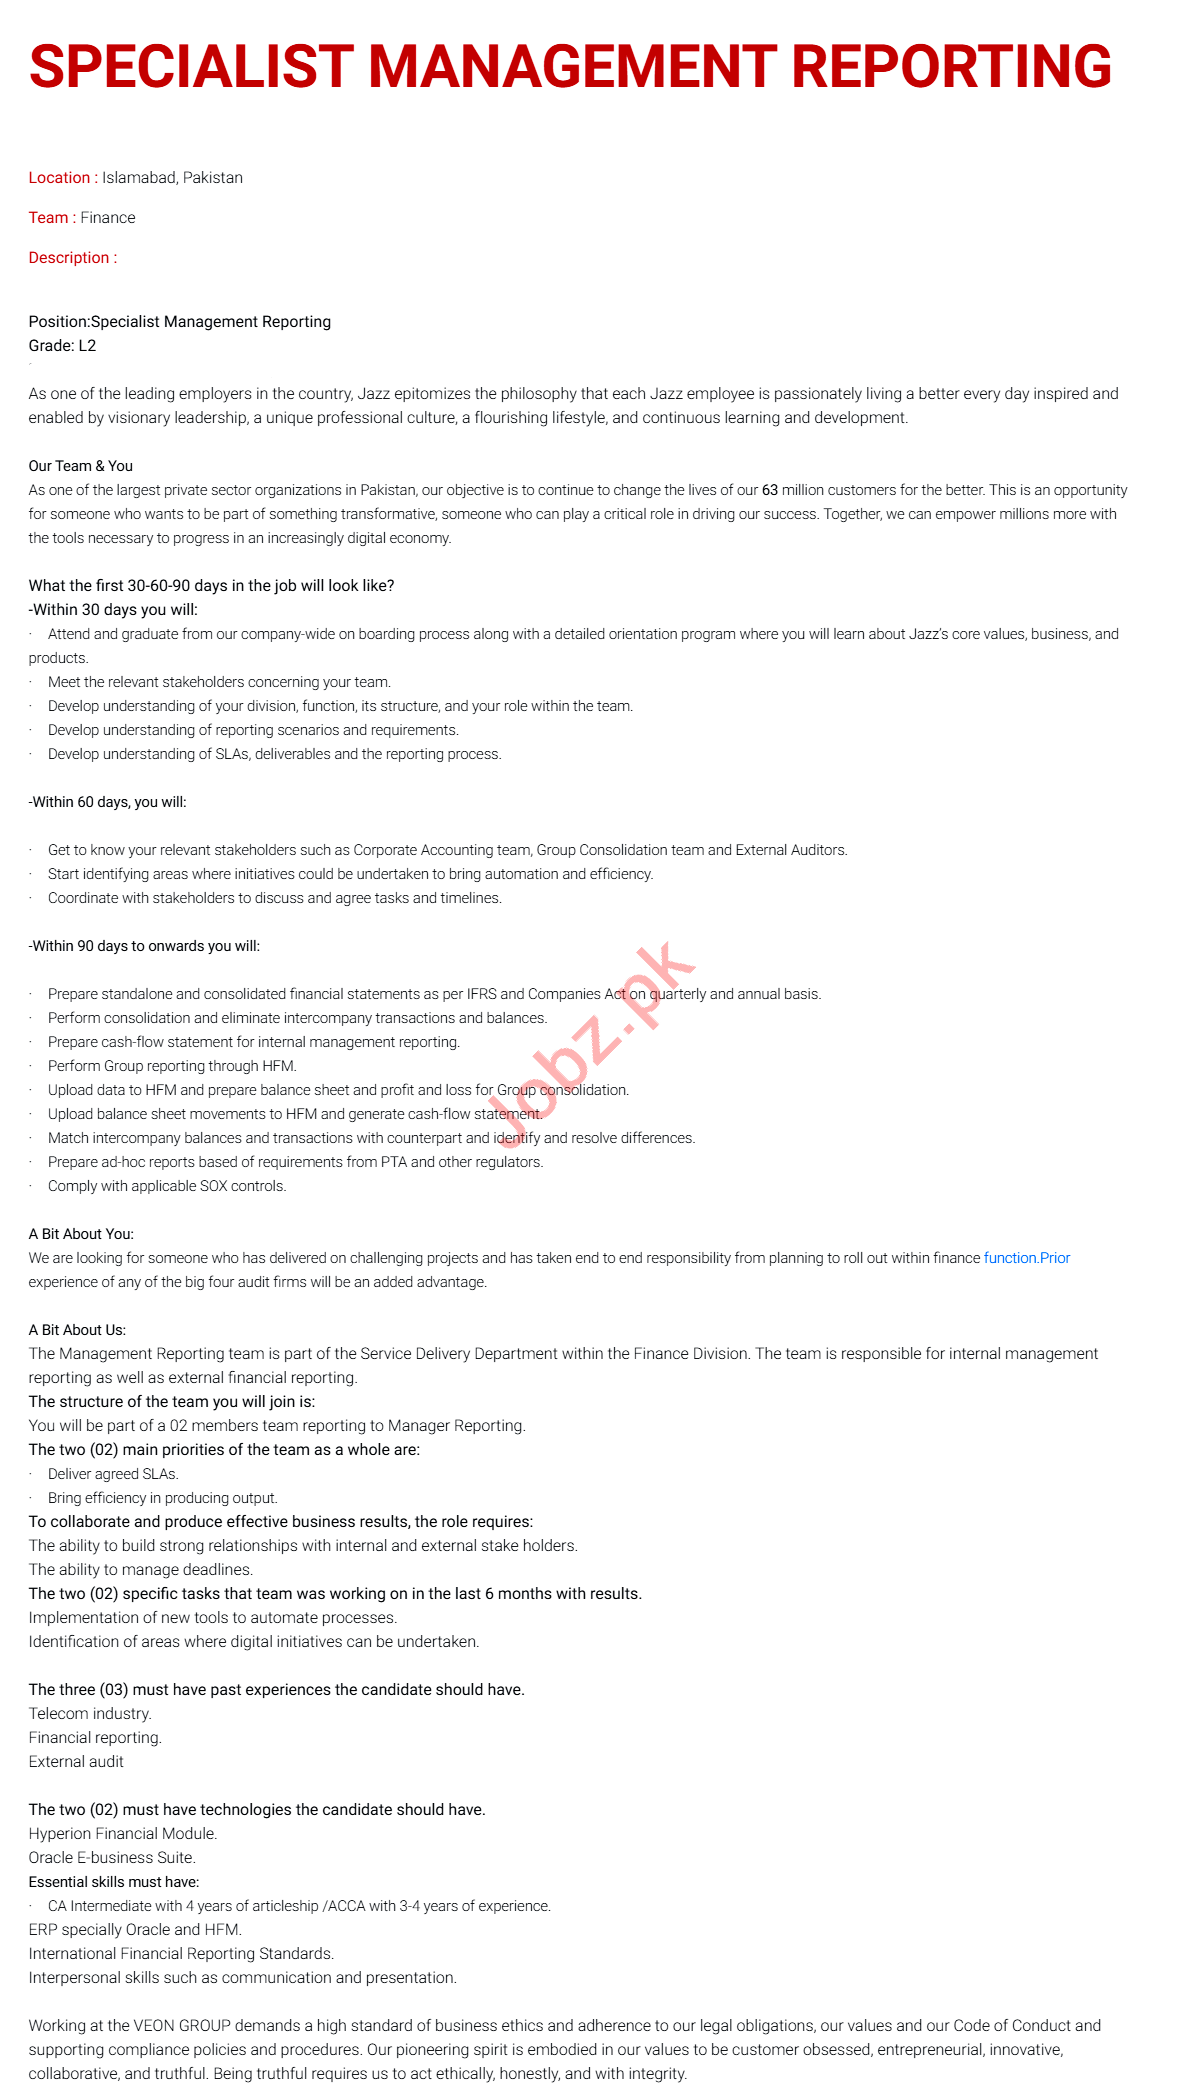 Specialist Management Reporting Jobs 2021 in Islamabad